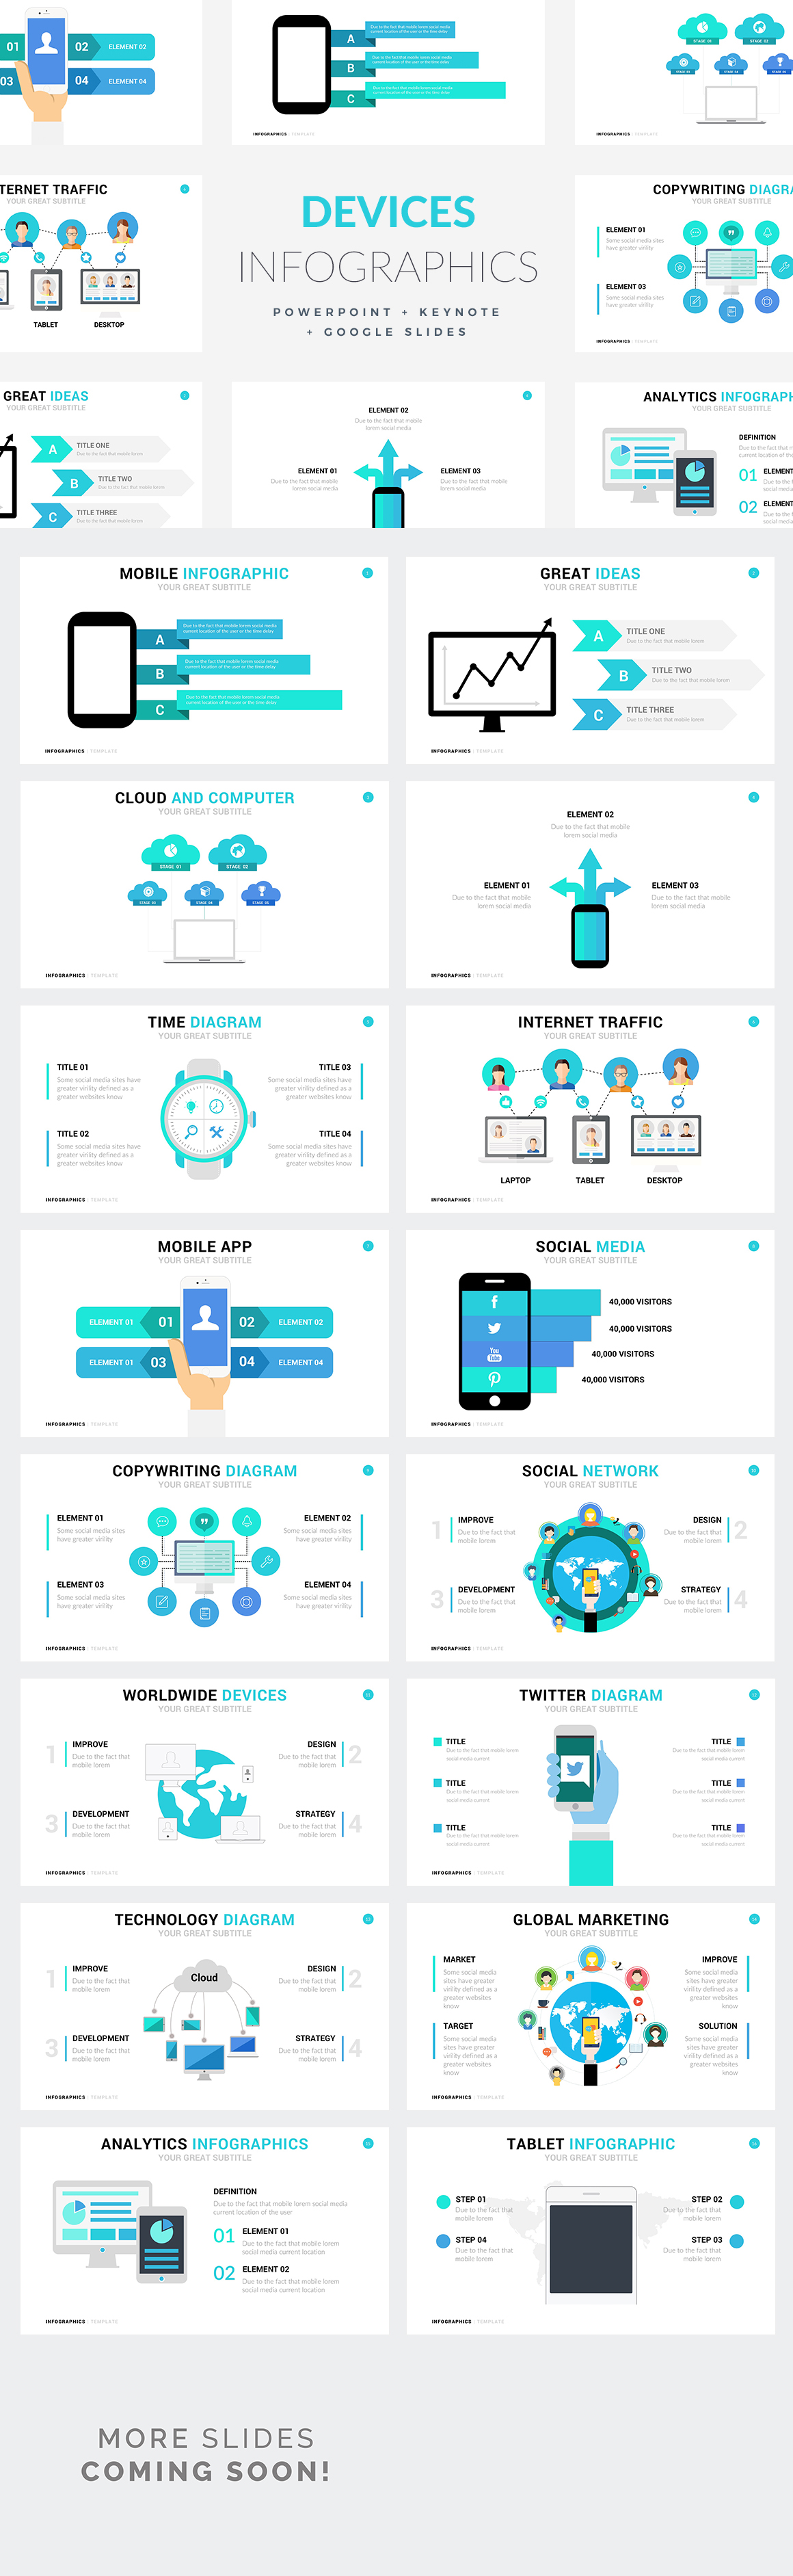 Devices Infographic Templates - PowerPoint Template, Keynote Themes, Google Slides